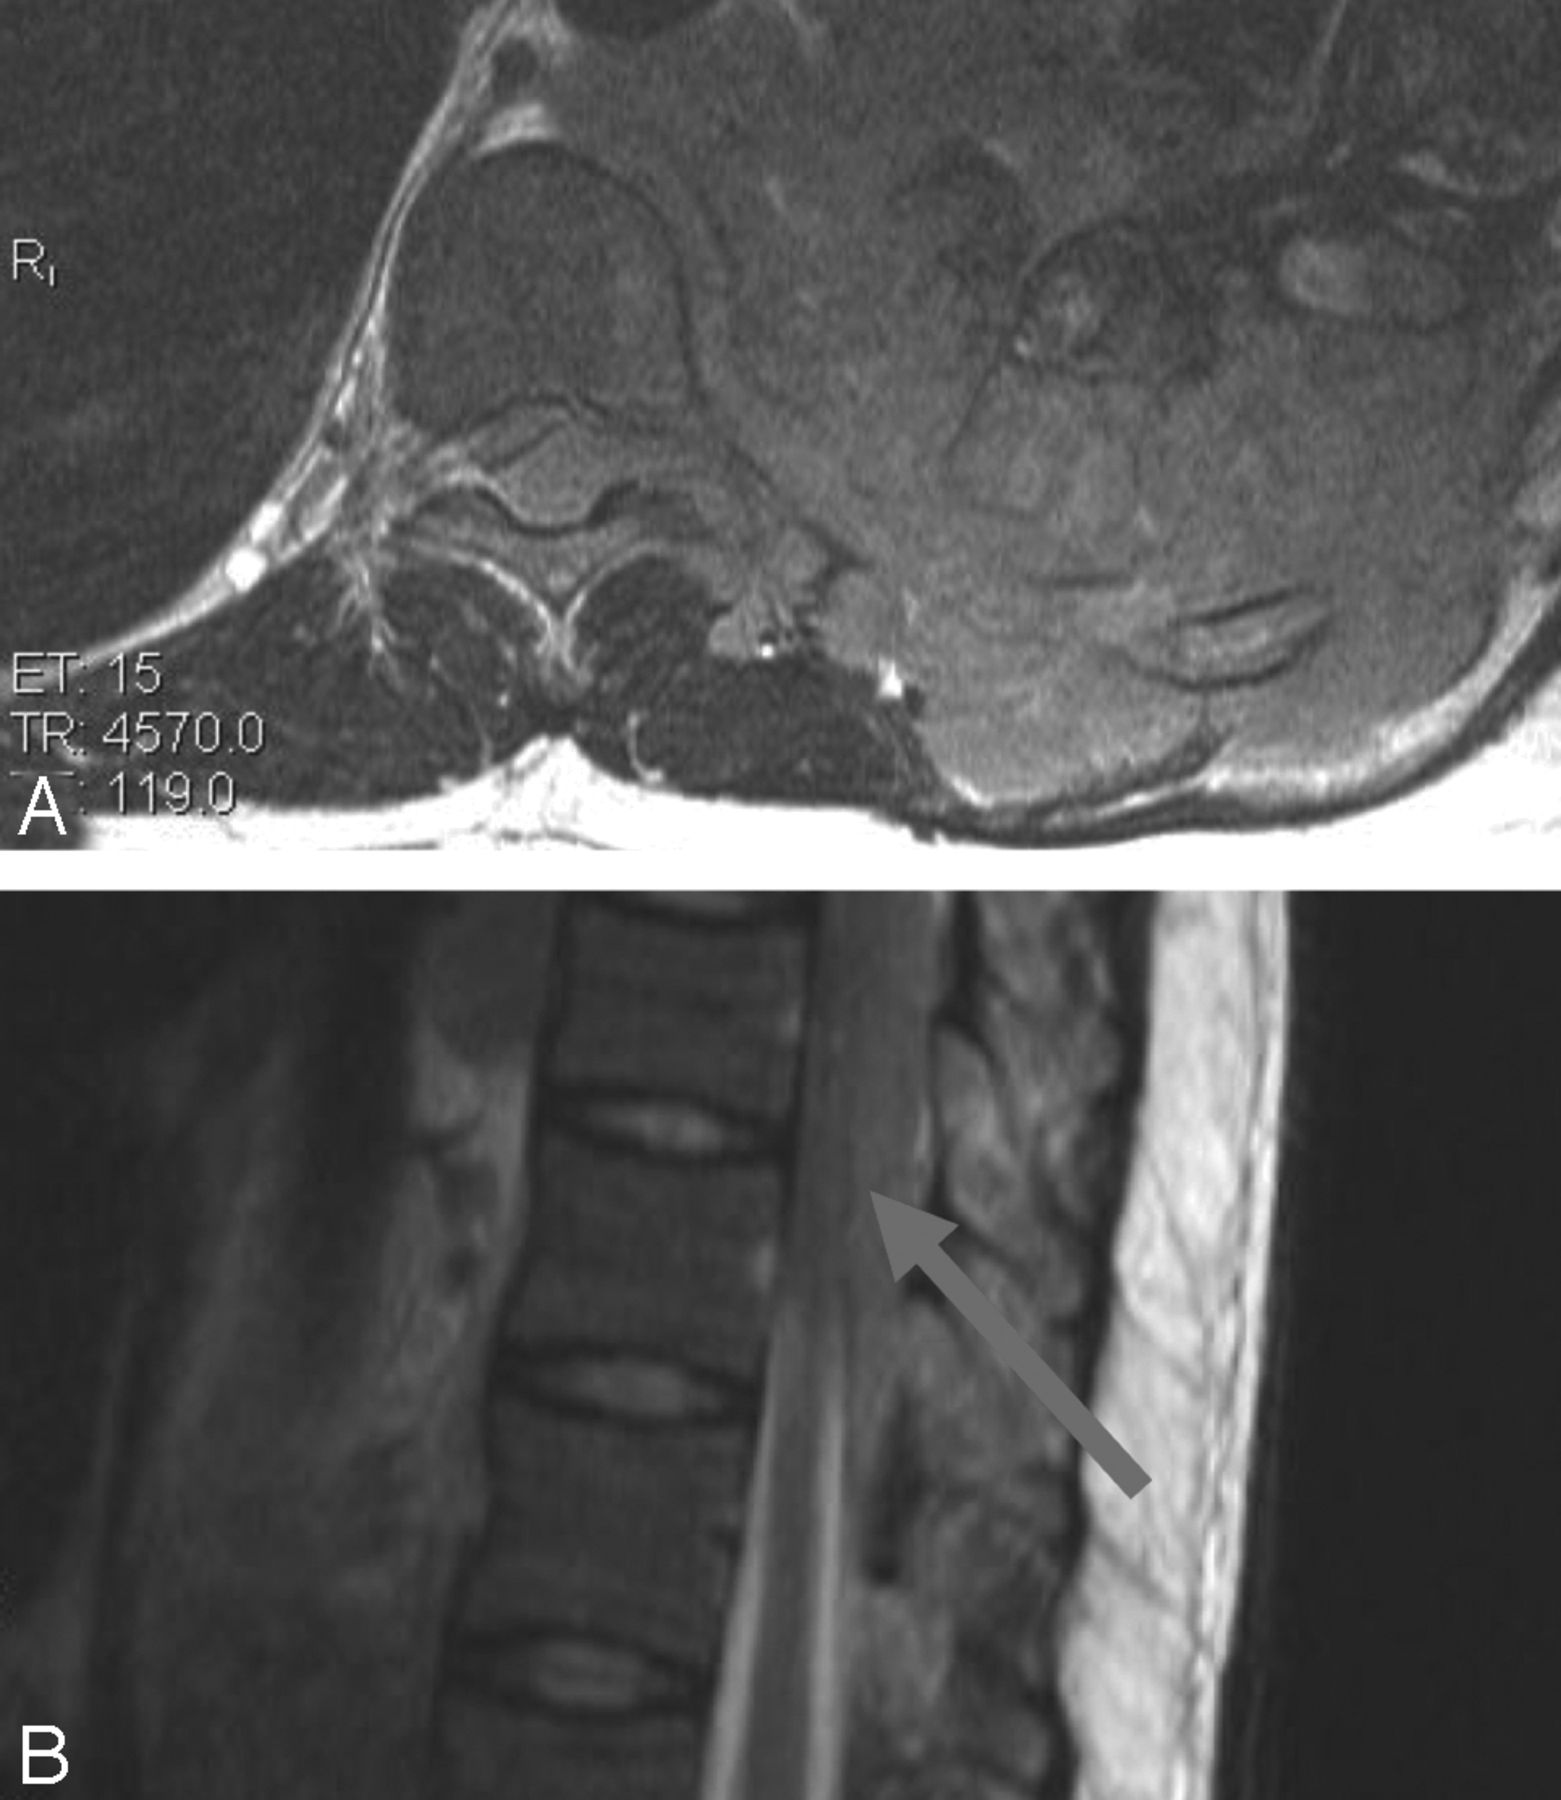 Acute Myelopathy or Cauda Equina Syndrome in HIV-Positive